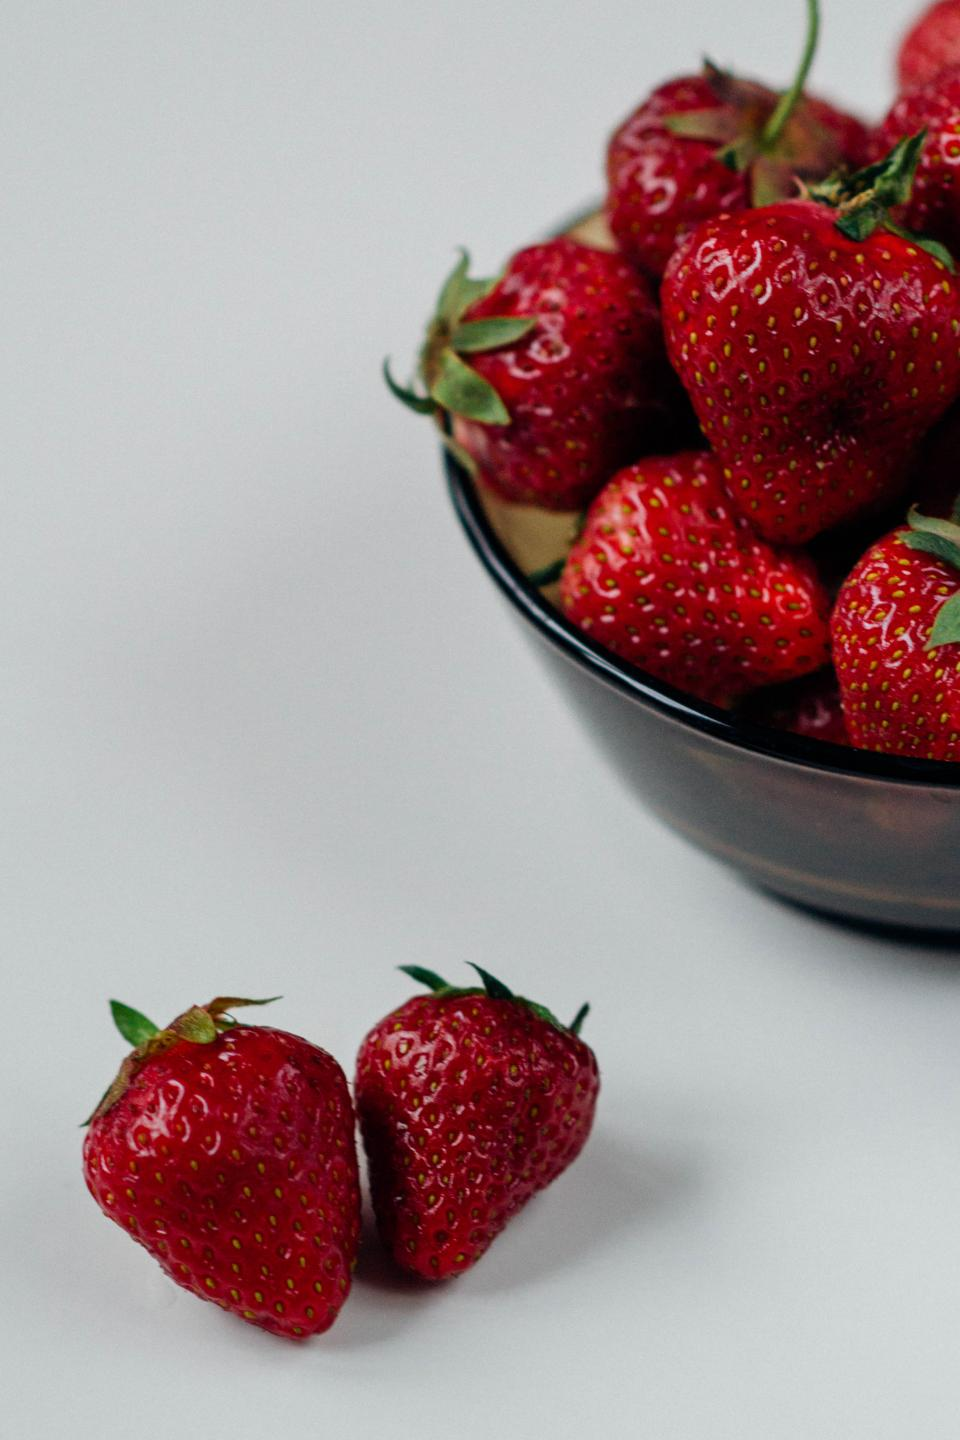 strawberries fruits healthy food red